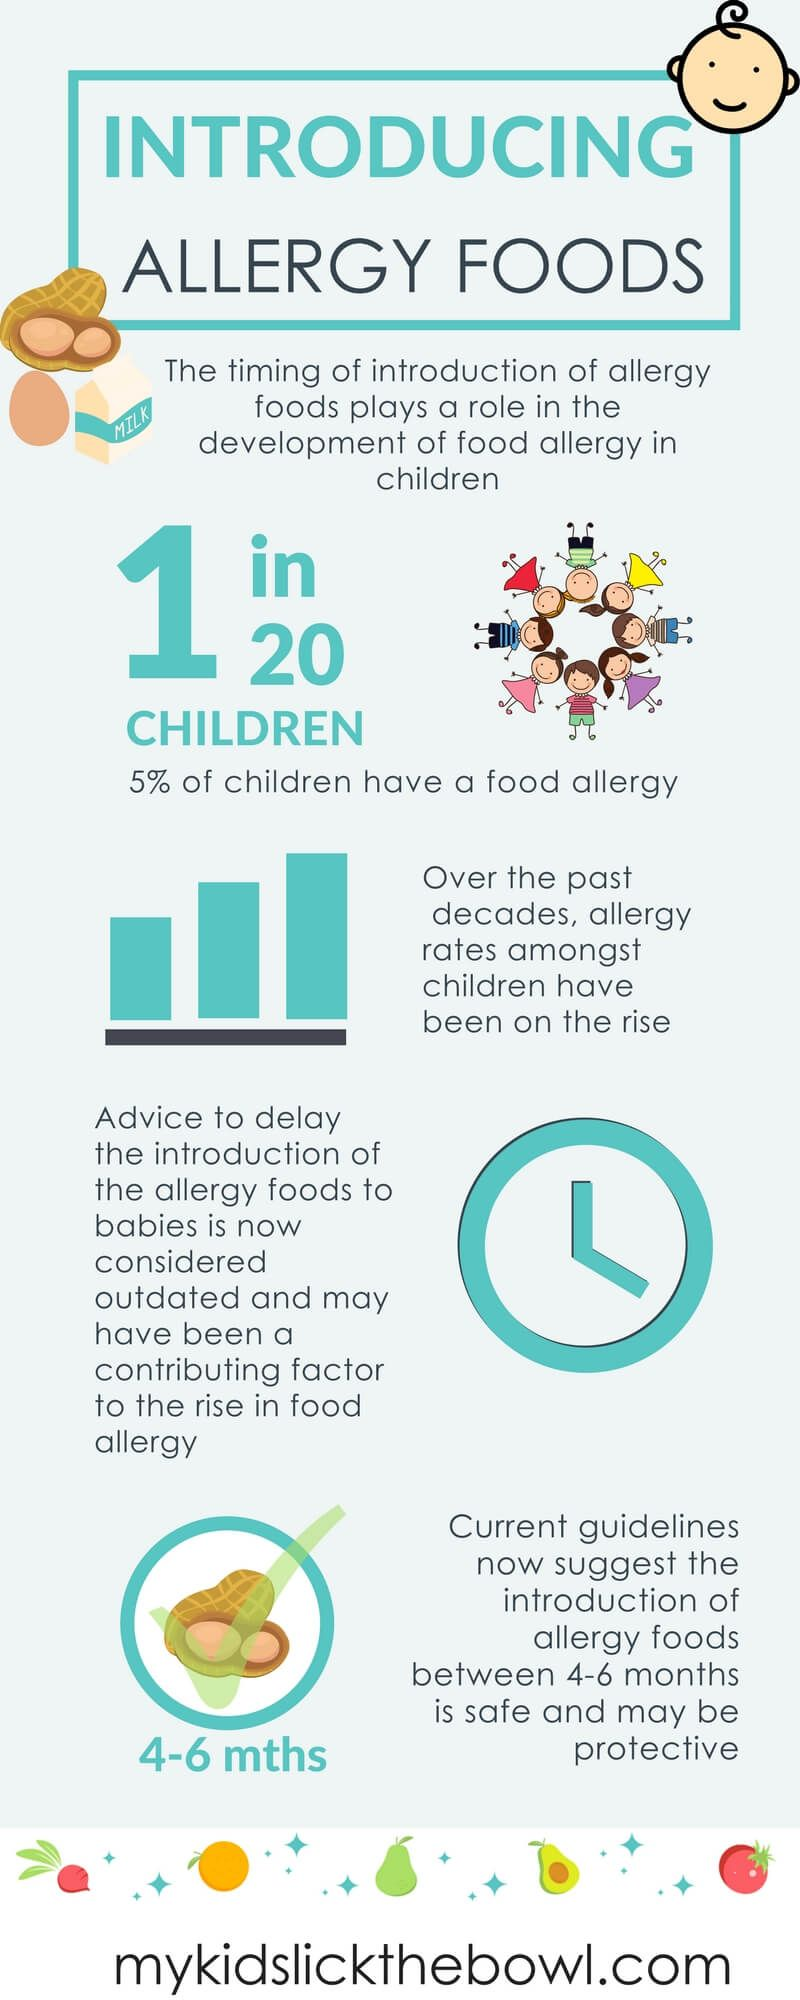 What is the best age to introduce allergy foods to babies